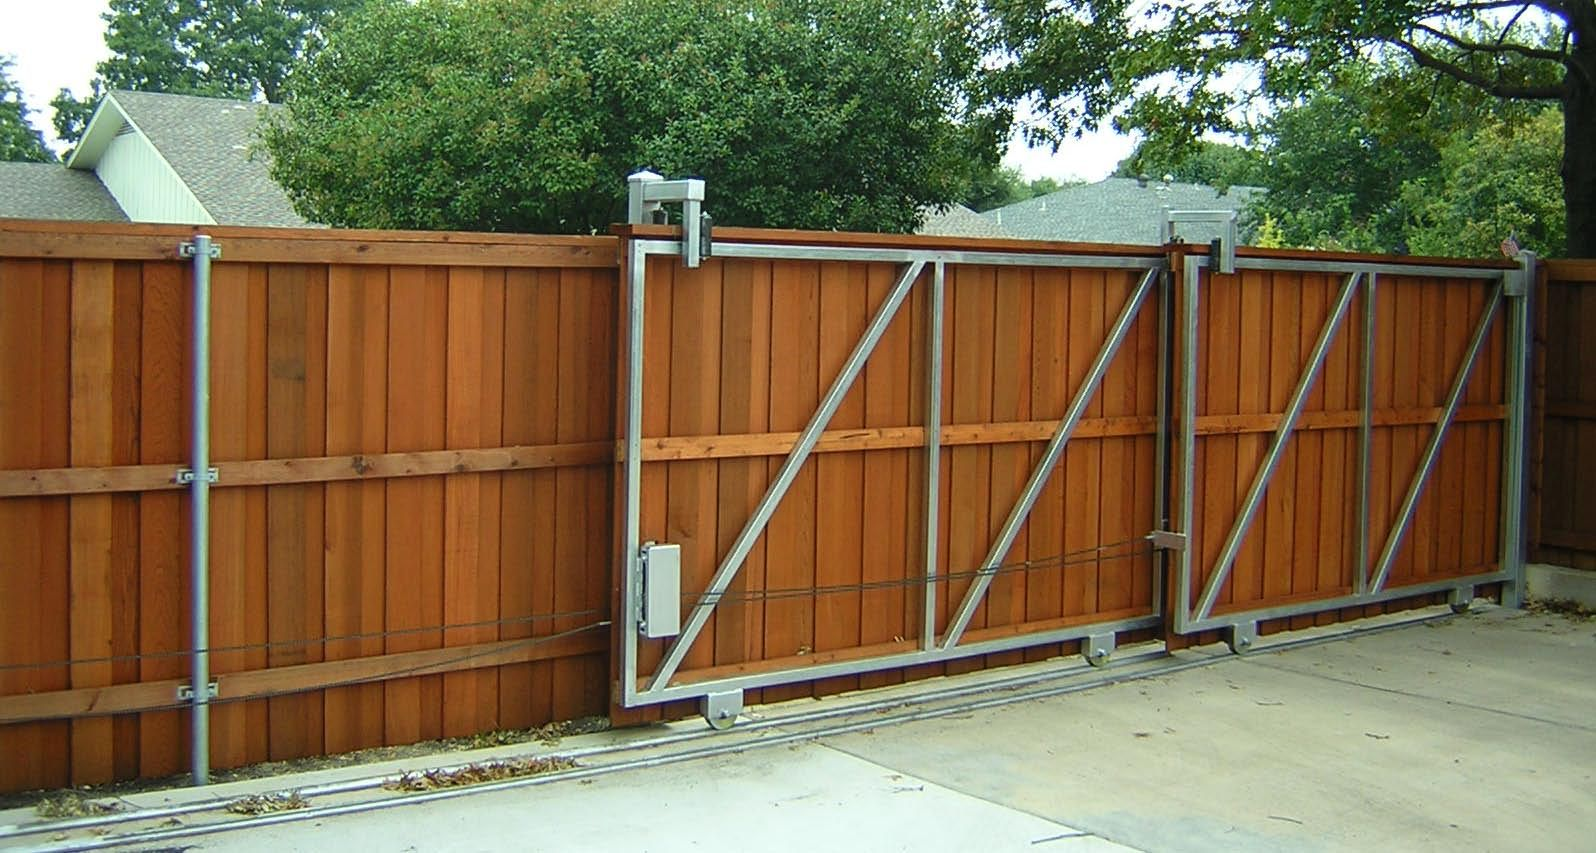 78 Backyard Concepts Dallas Tx 75218 Angies List Sliding Fence Gate Wood Fence Design Wooden Fence